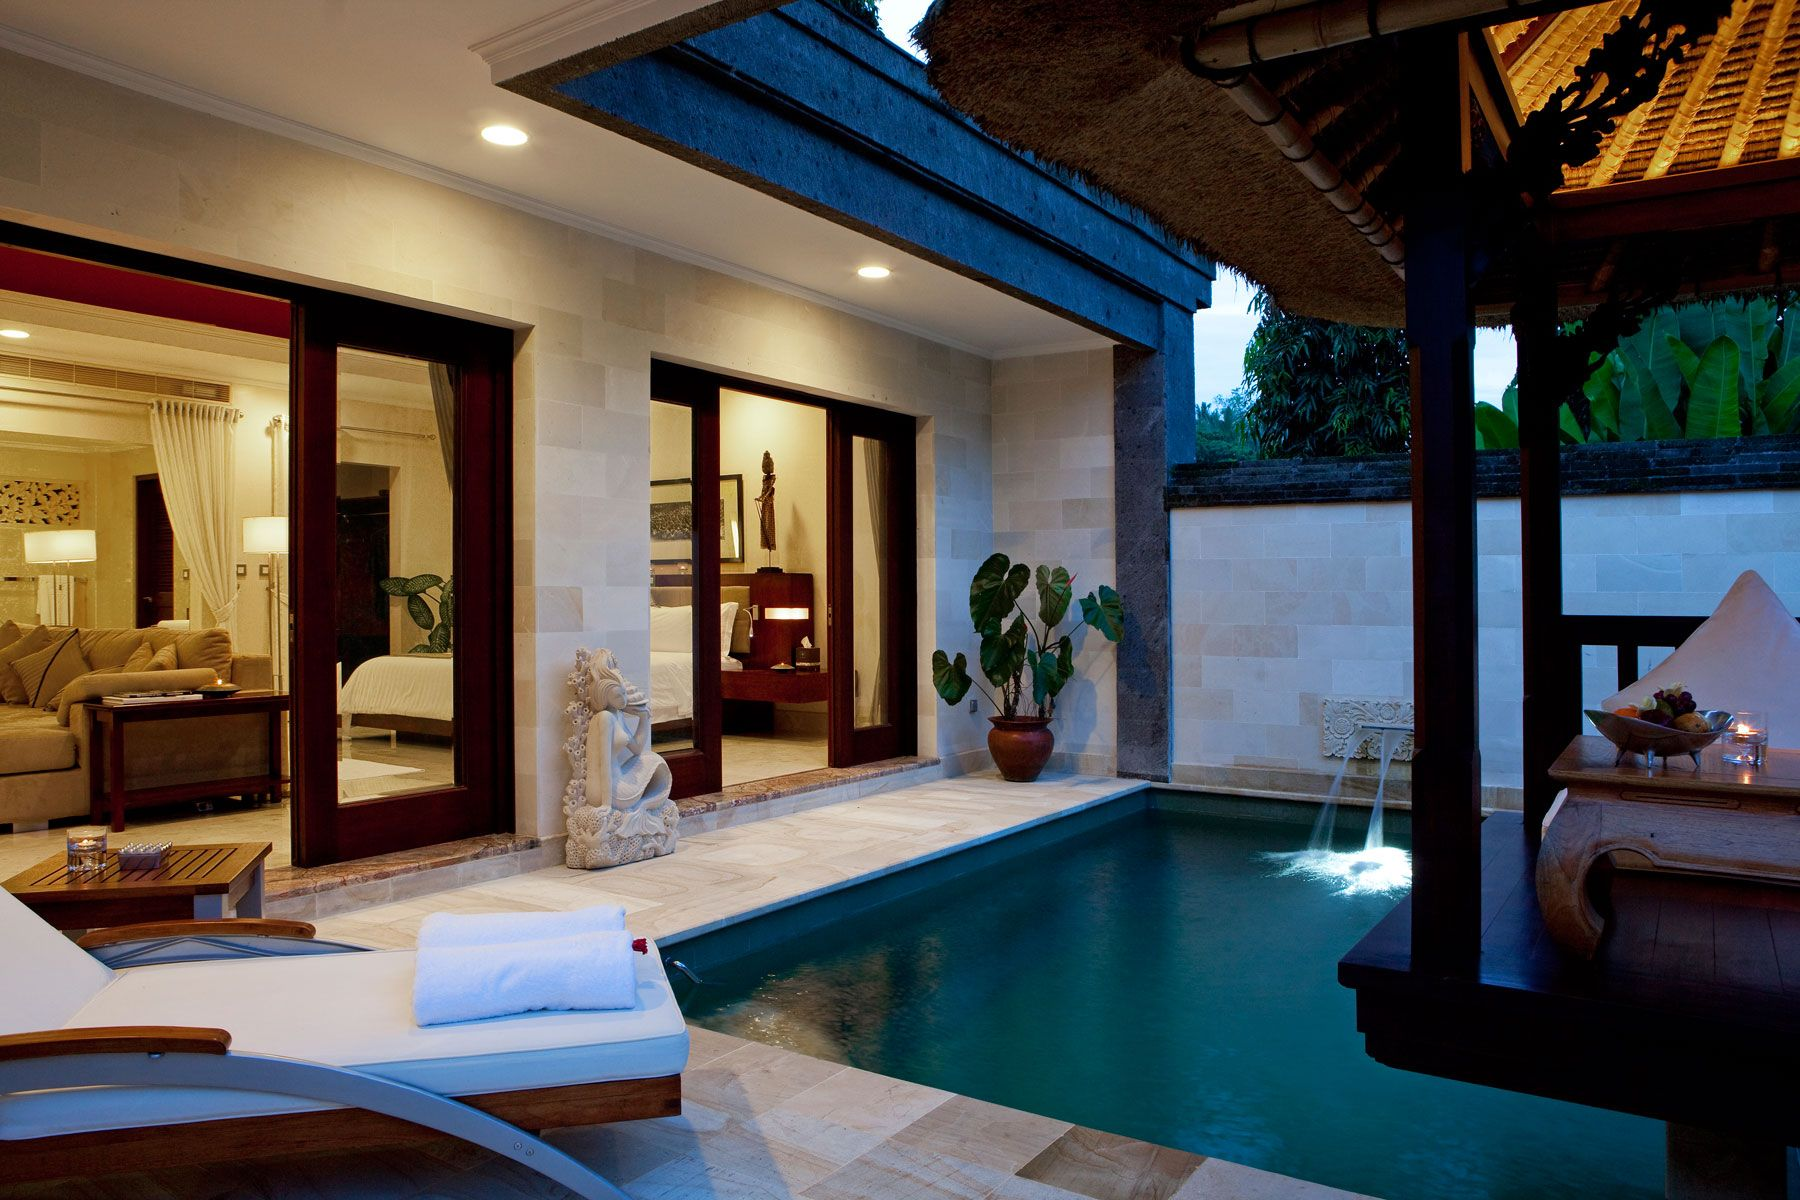 Appealing Home Swimming Pool Indoor Design Inspiration Feat ...